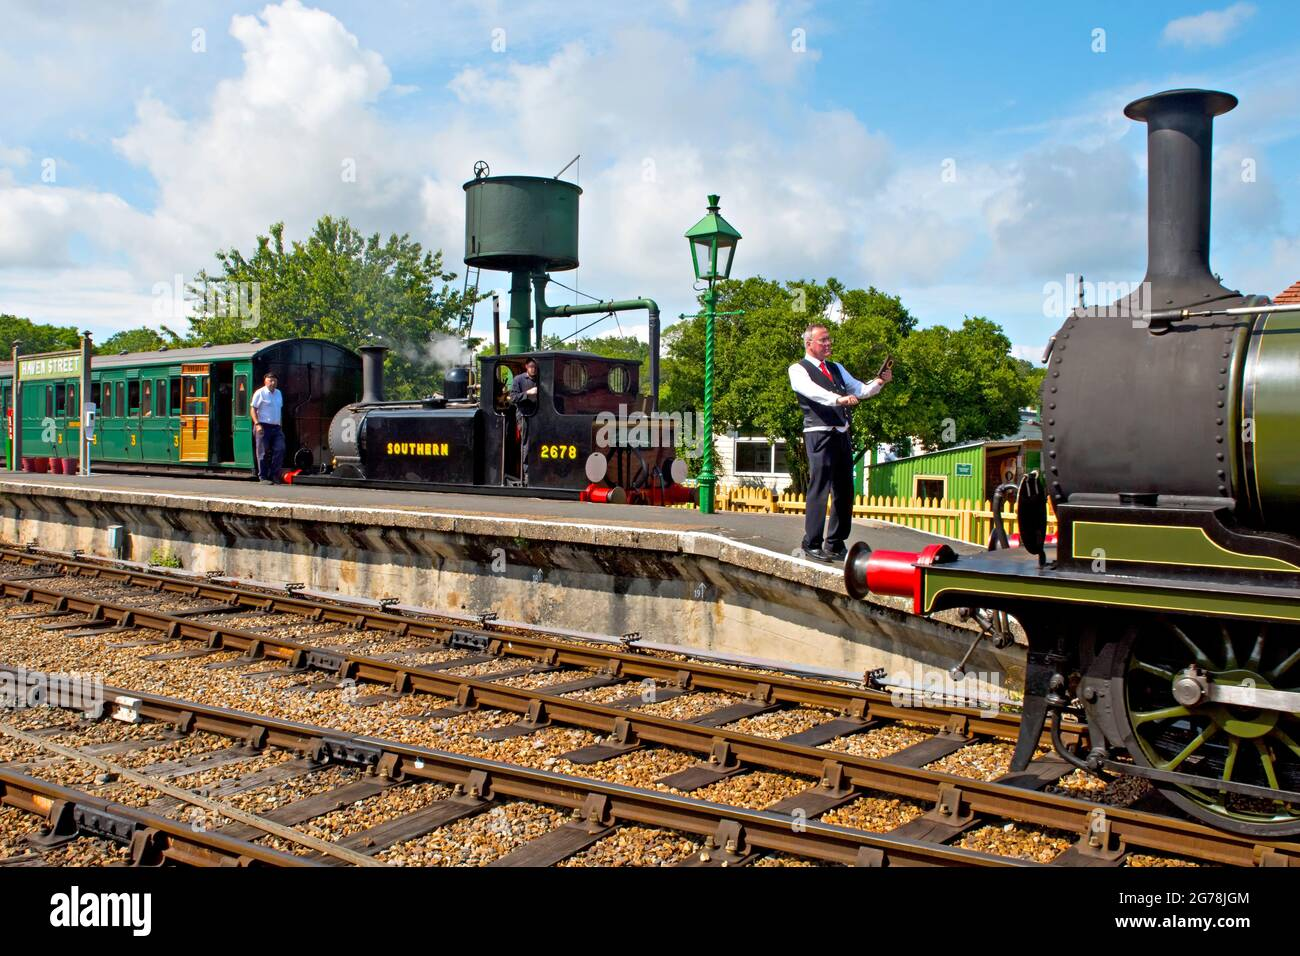 The signalman prepares to exchange single line tokens at Havenstreet station on the Isle of Wight Steam Railway Stock Photo